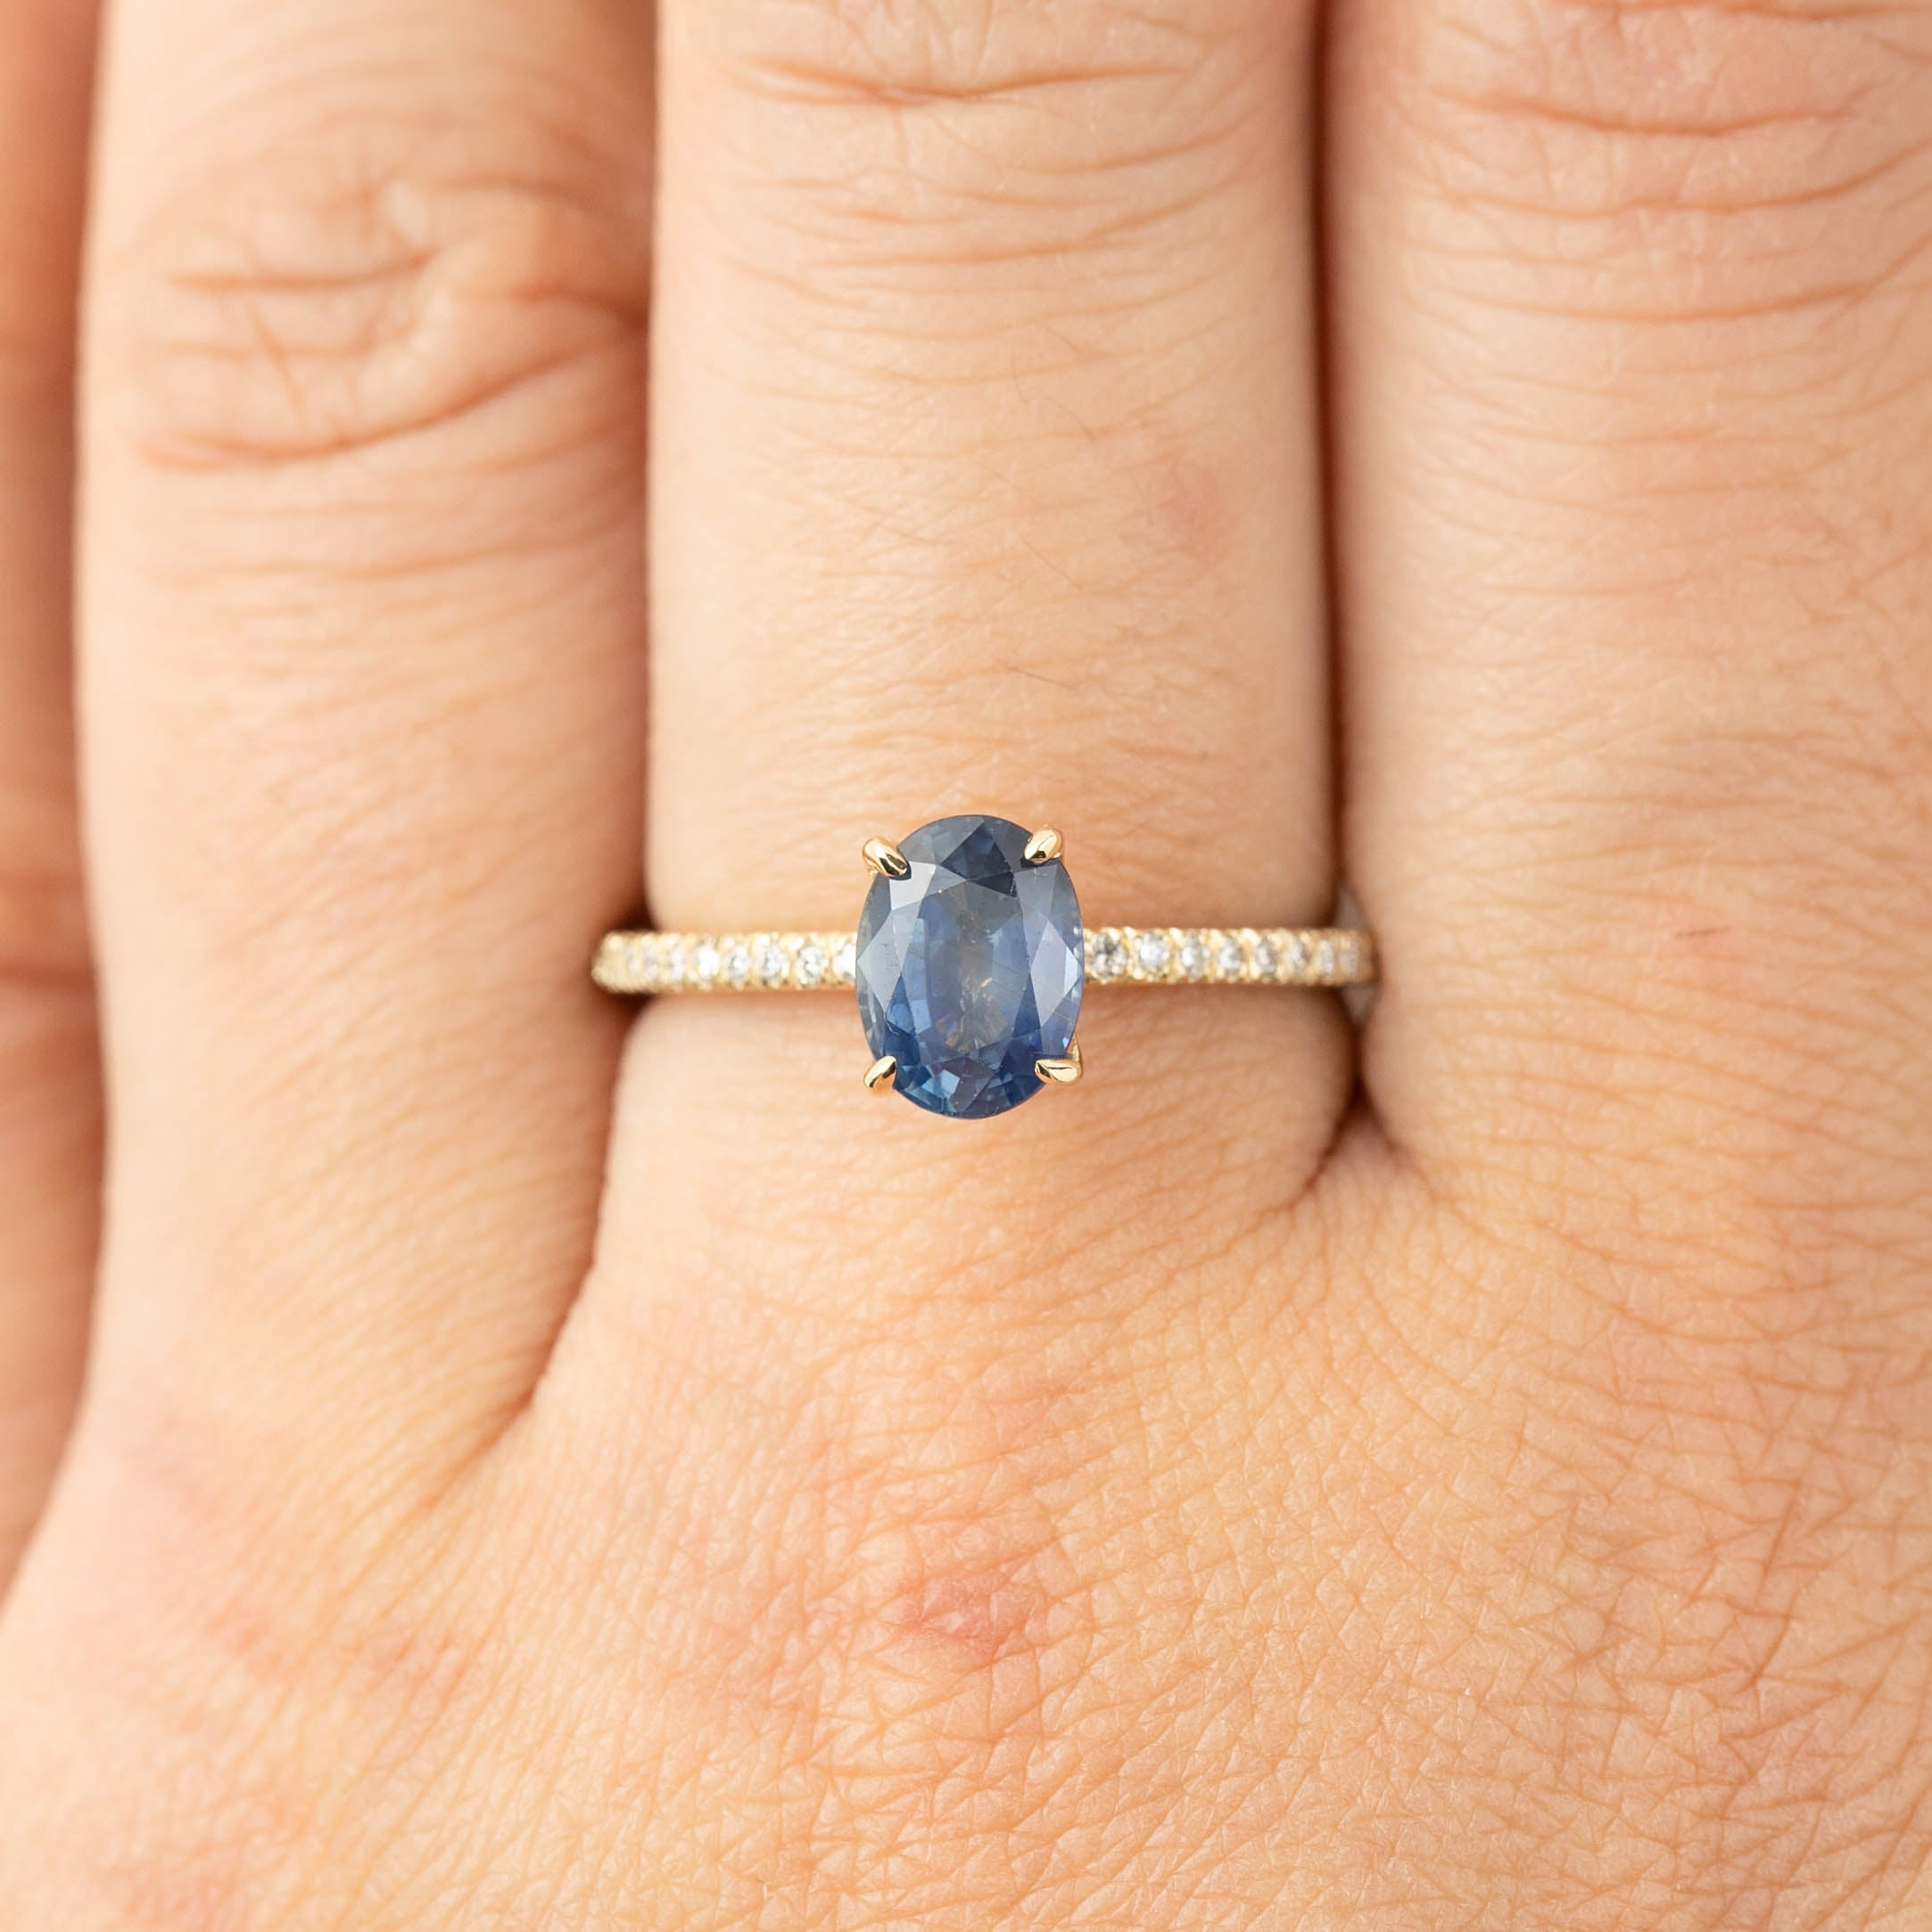 Maria Ring - 1.52ct Misty Blue Sapphire (One of a kind)